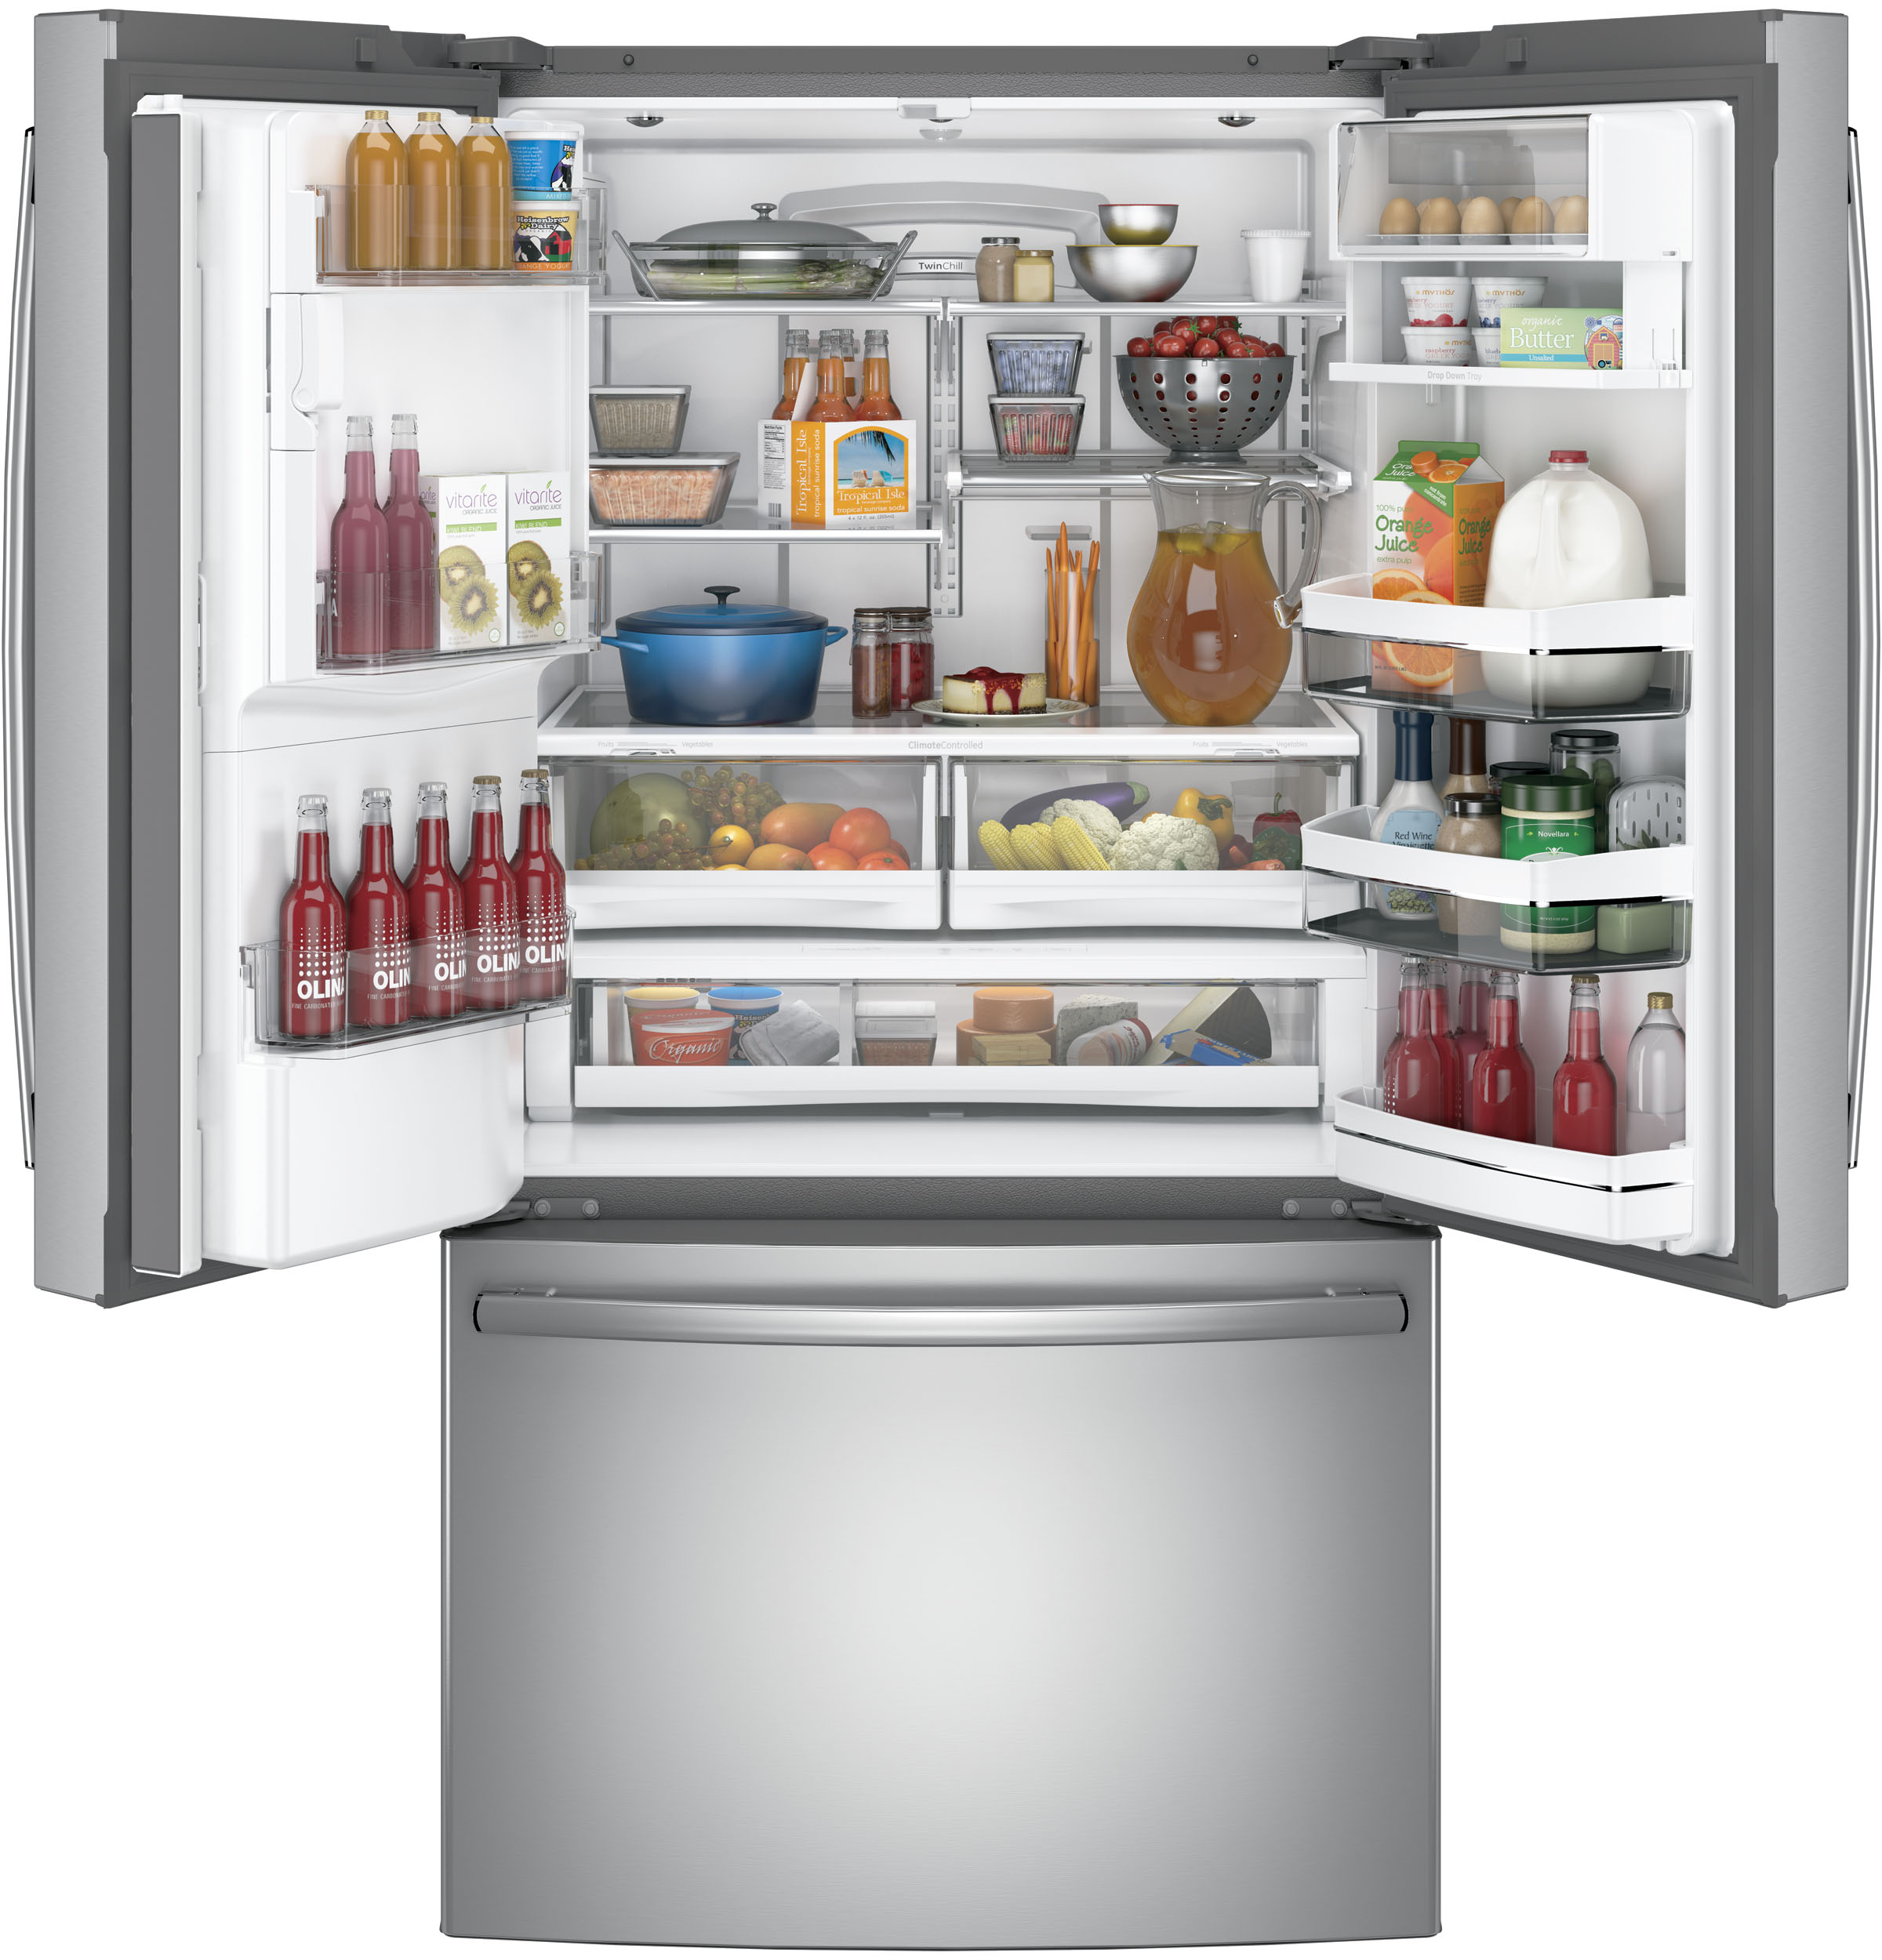 Model: PFE28KSKSS | GE Profile™ Series ENERGY STAR® 27.8 Cu. Ft. French-Door Refrigerator with Hands-Free AutoFill